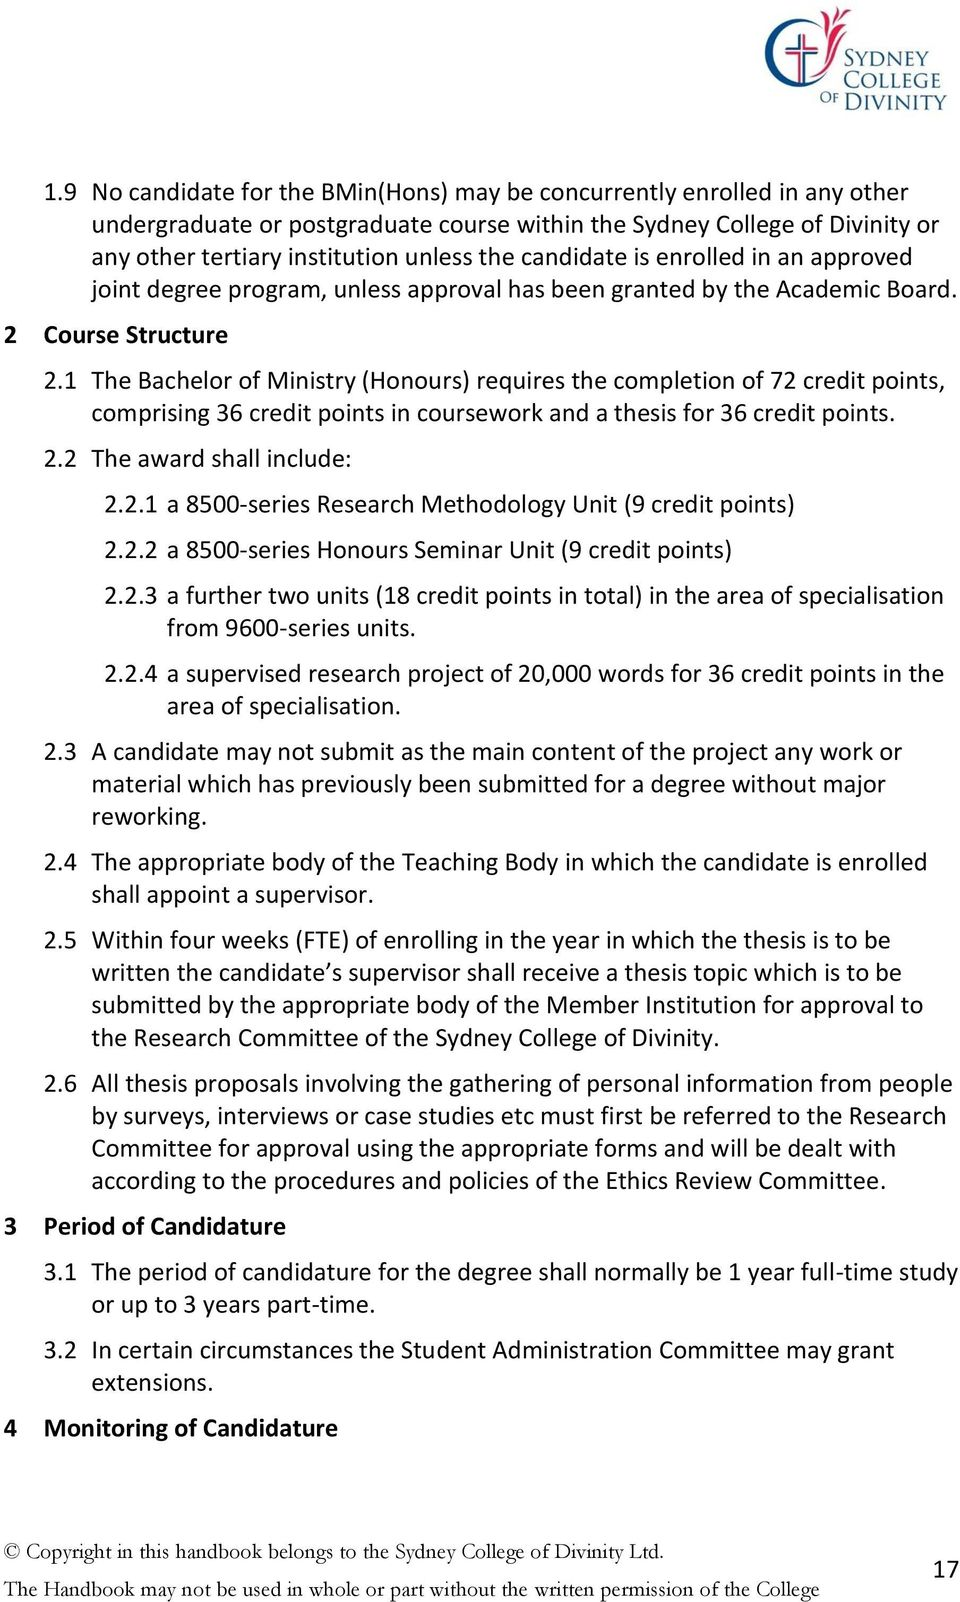 1 The Bachelor of Ministry (Honours) requires the completion of 72 credit points, comprising 36 credit points in coursework and a thesis for 36 credit points. 2.2 The award shall include: 2.2.1 a 8500-series Research Methodology Unit (9 credit points) 2.